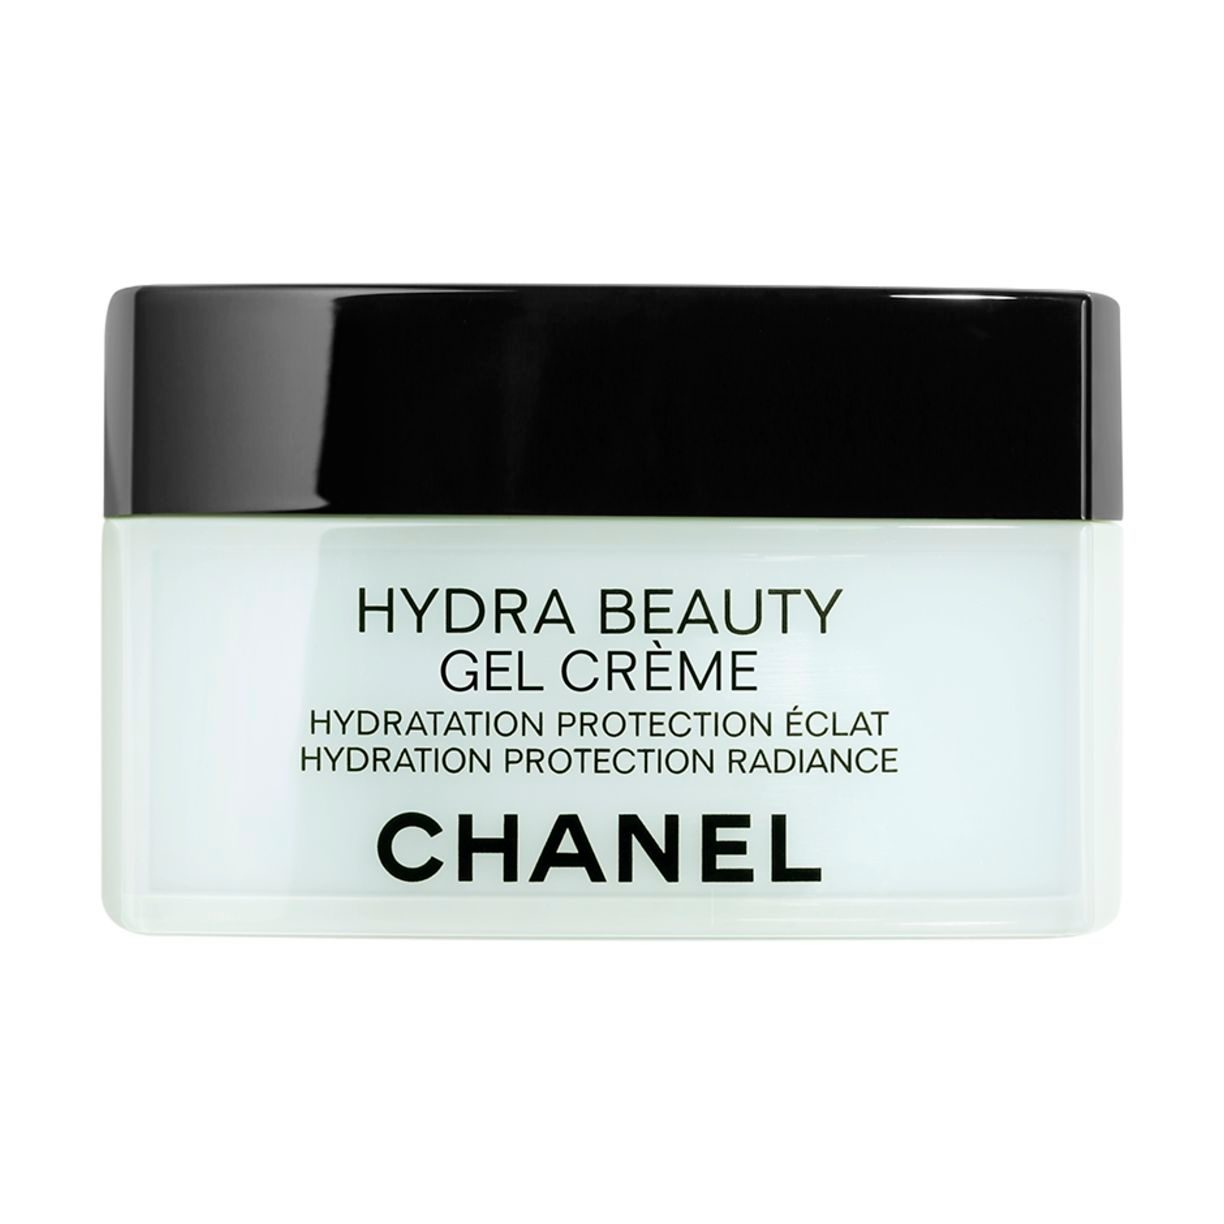 HYDRA BEAUTY GEL CRÈME HYDRATION PROTECTION RADIANCE 50g